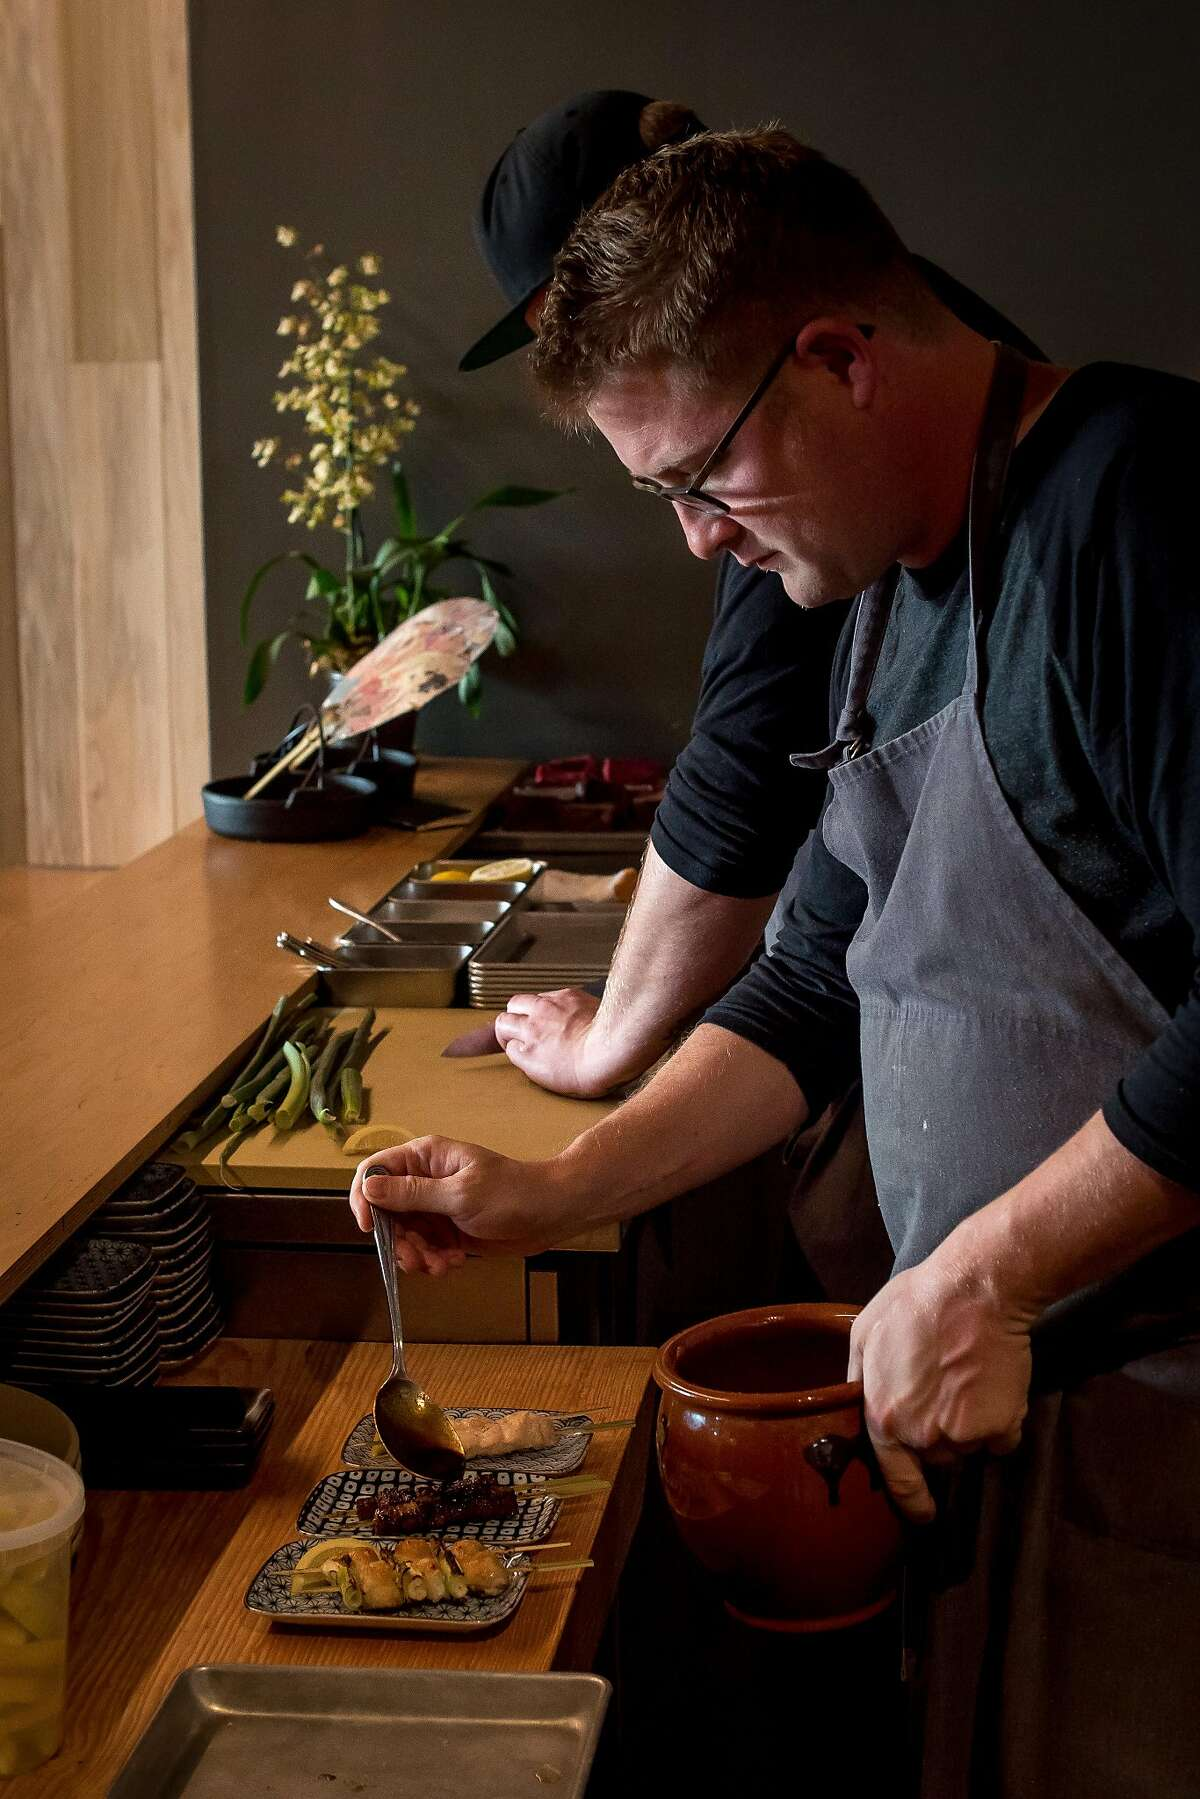 Chef Curtis Di Fede plates the Yakitori at Miminashi in Napa, Calif. on June 30th, 2016.